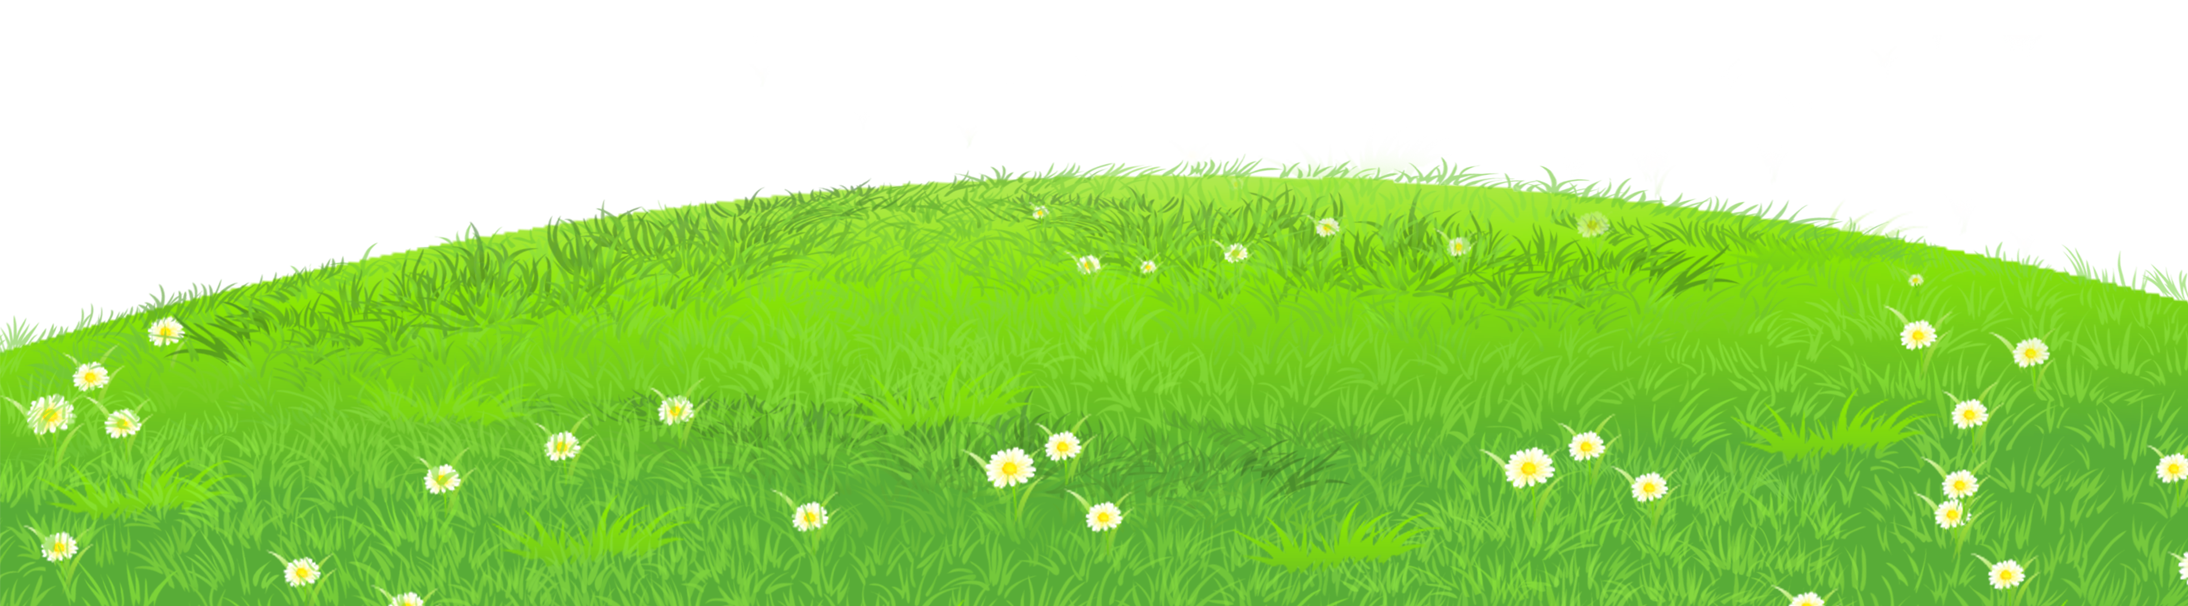 Hills clipart lawn. Ground panda free images